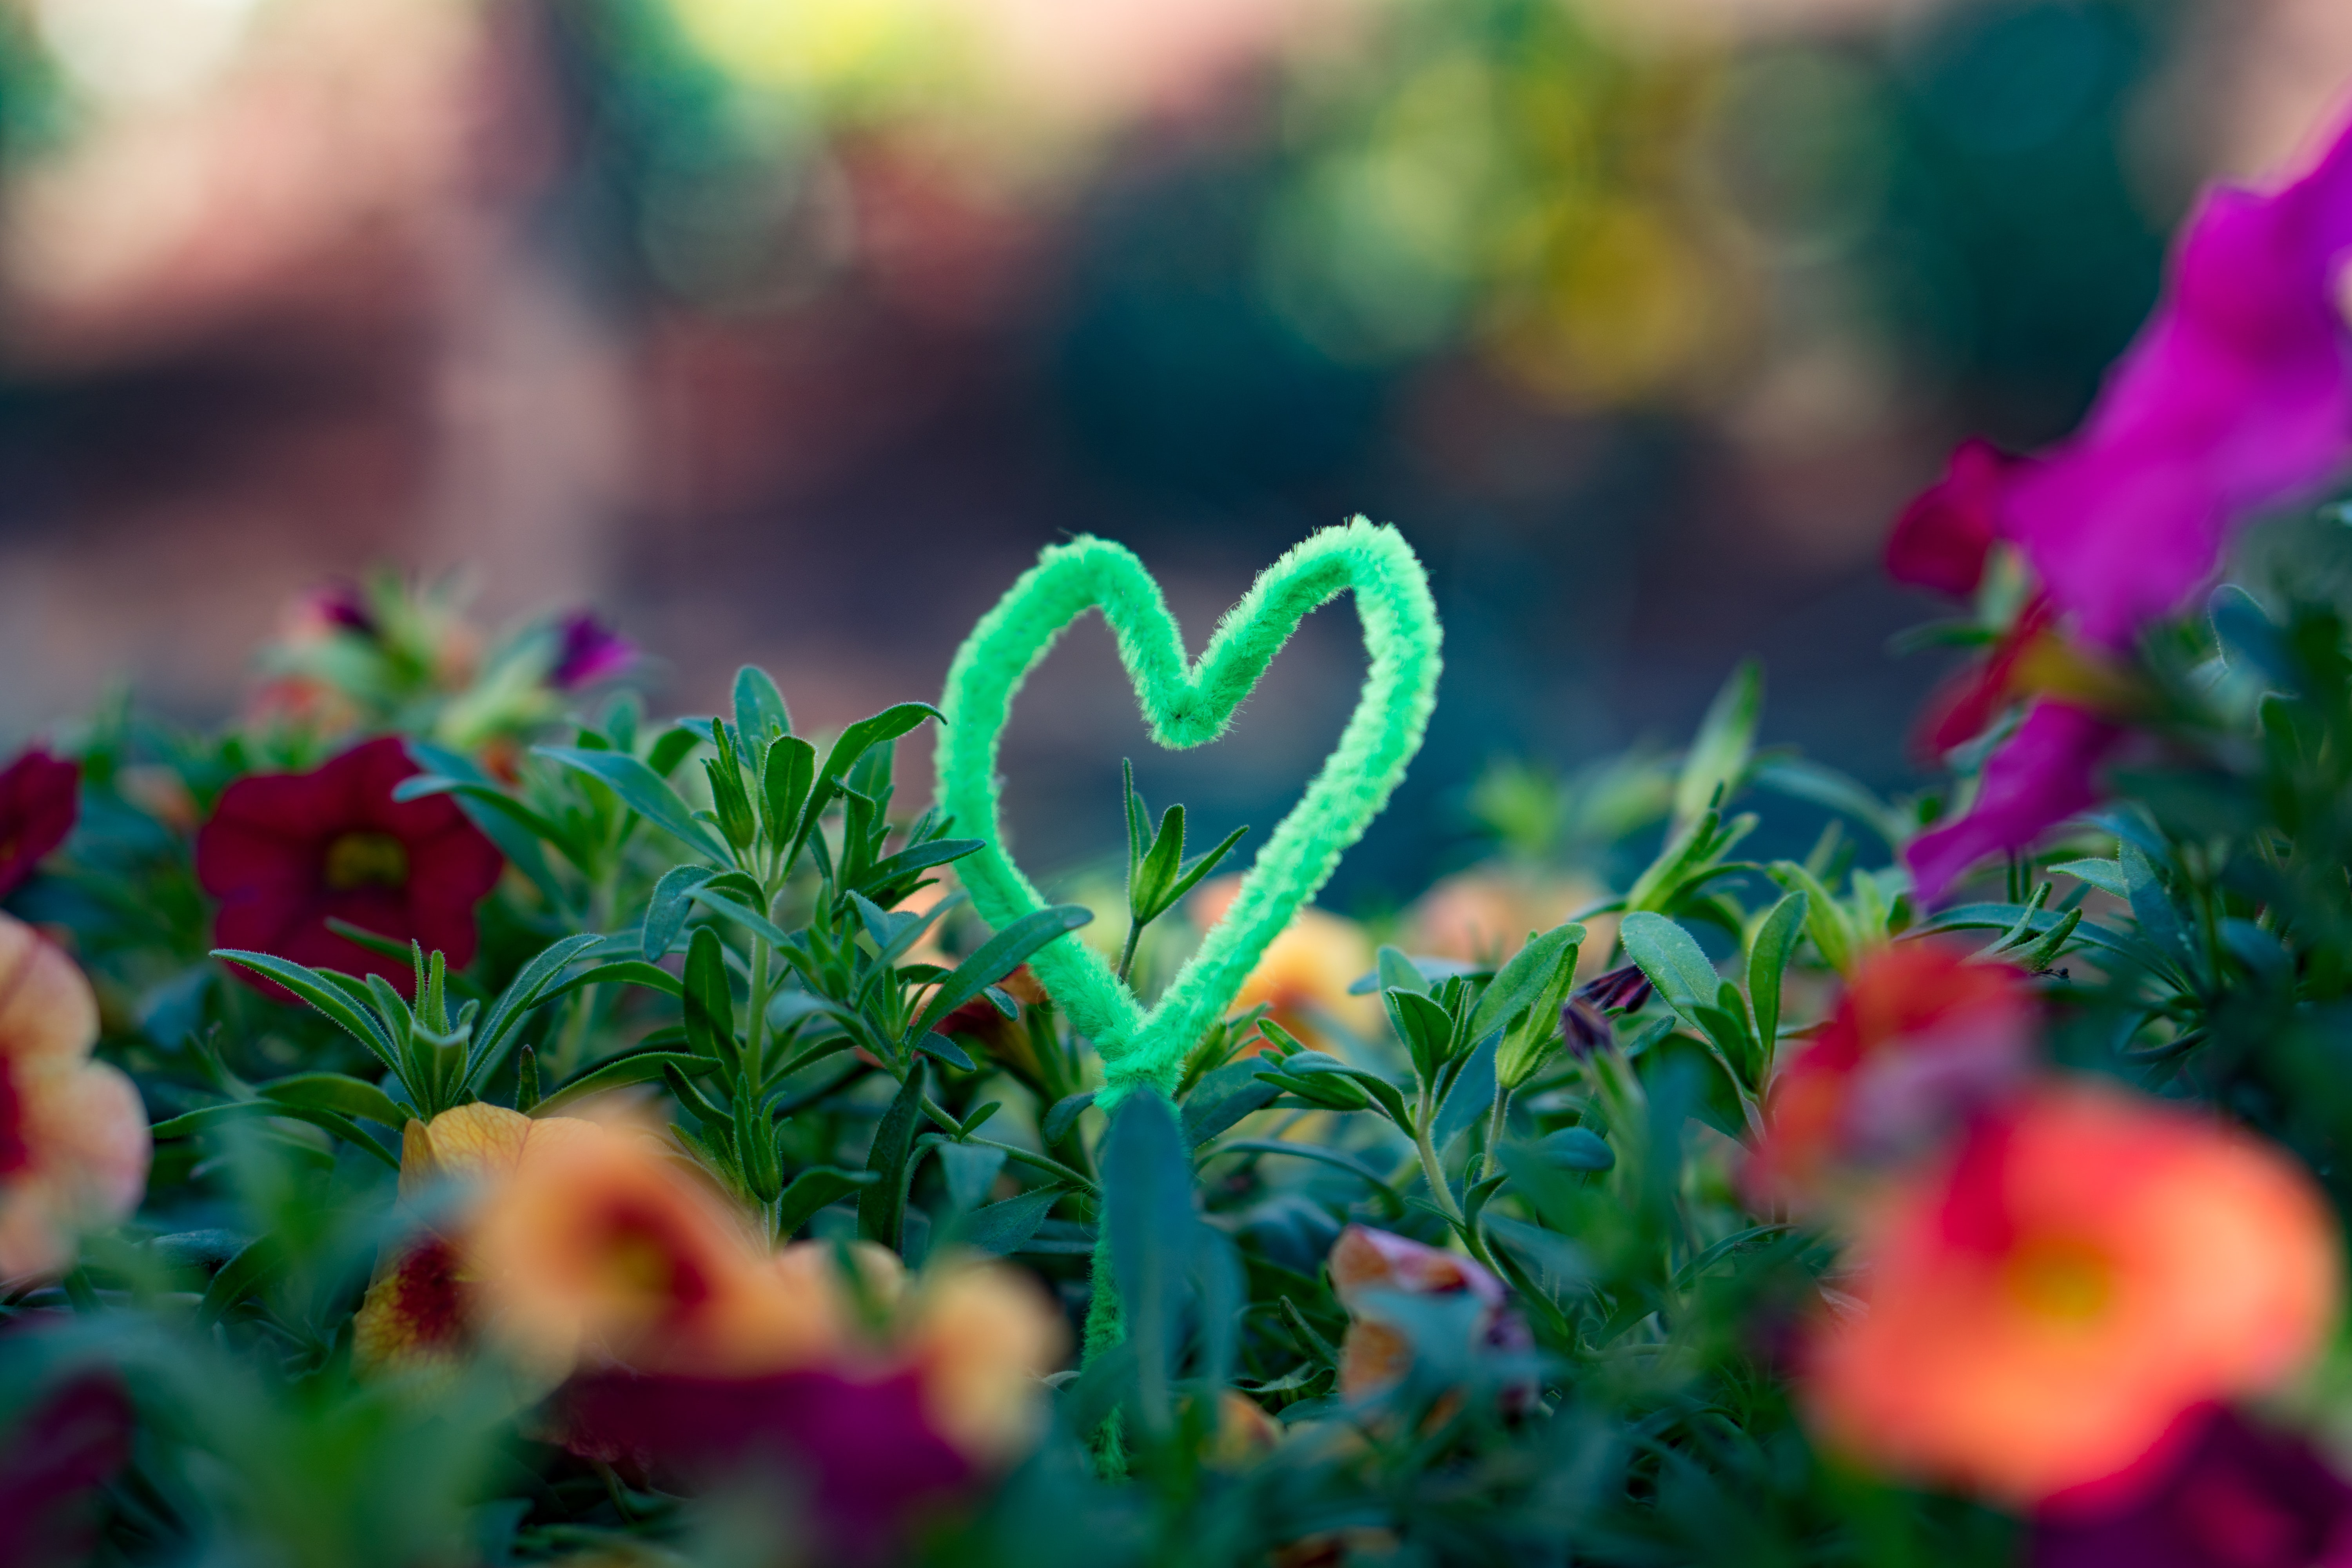 selective focus photography of heart-shaped green wire